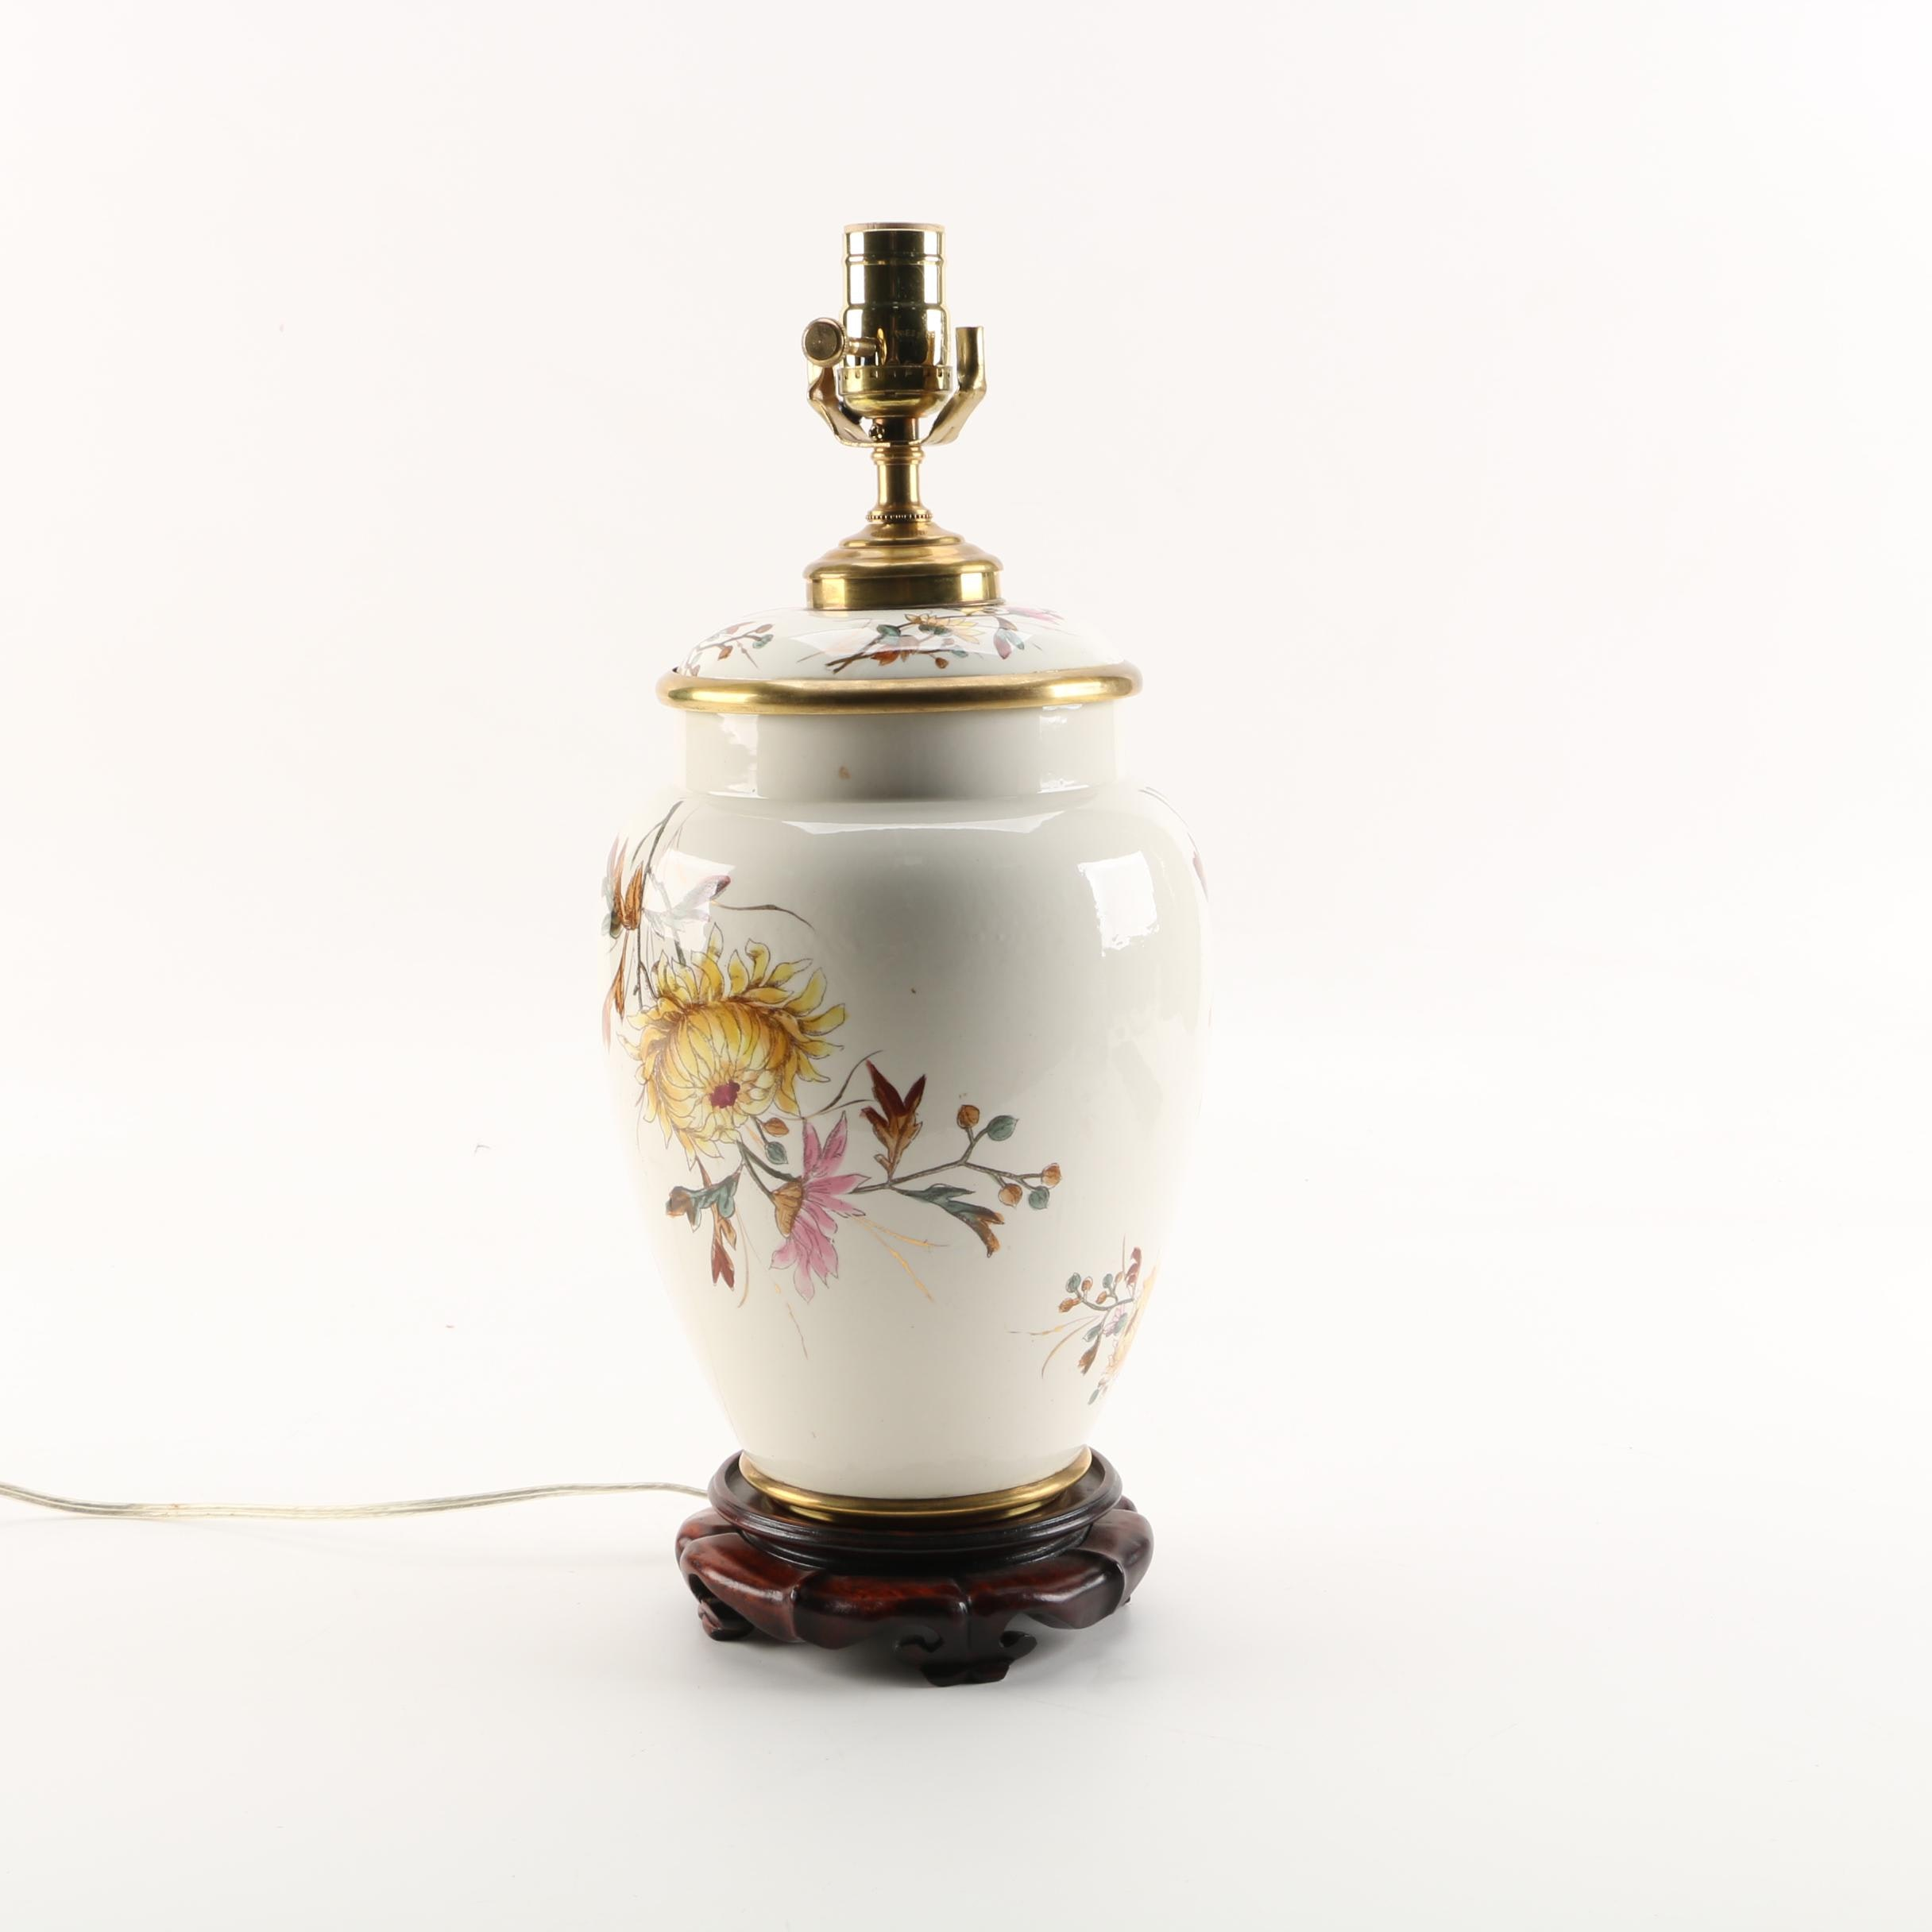 English Porcelain Transferware Table Lamp on Carved Wooden Base